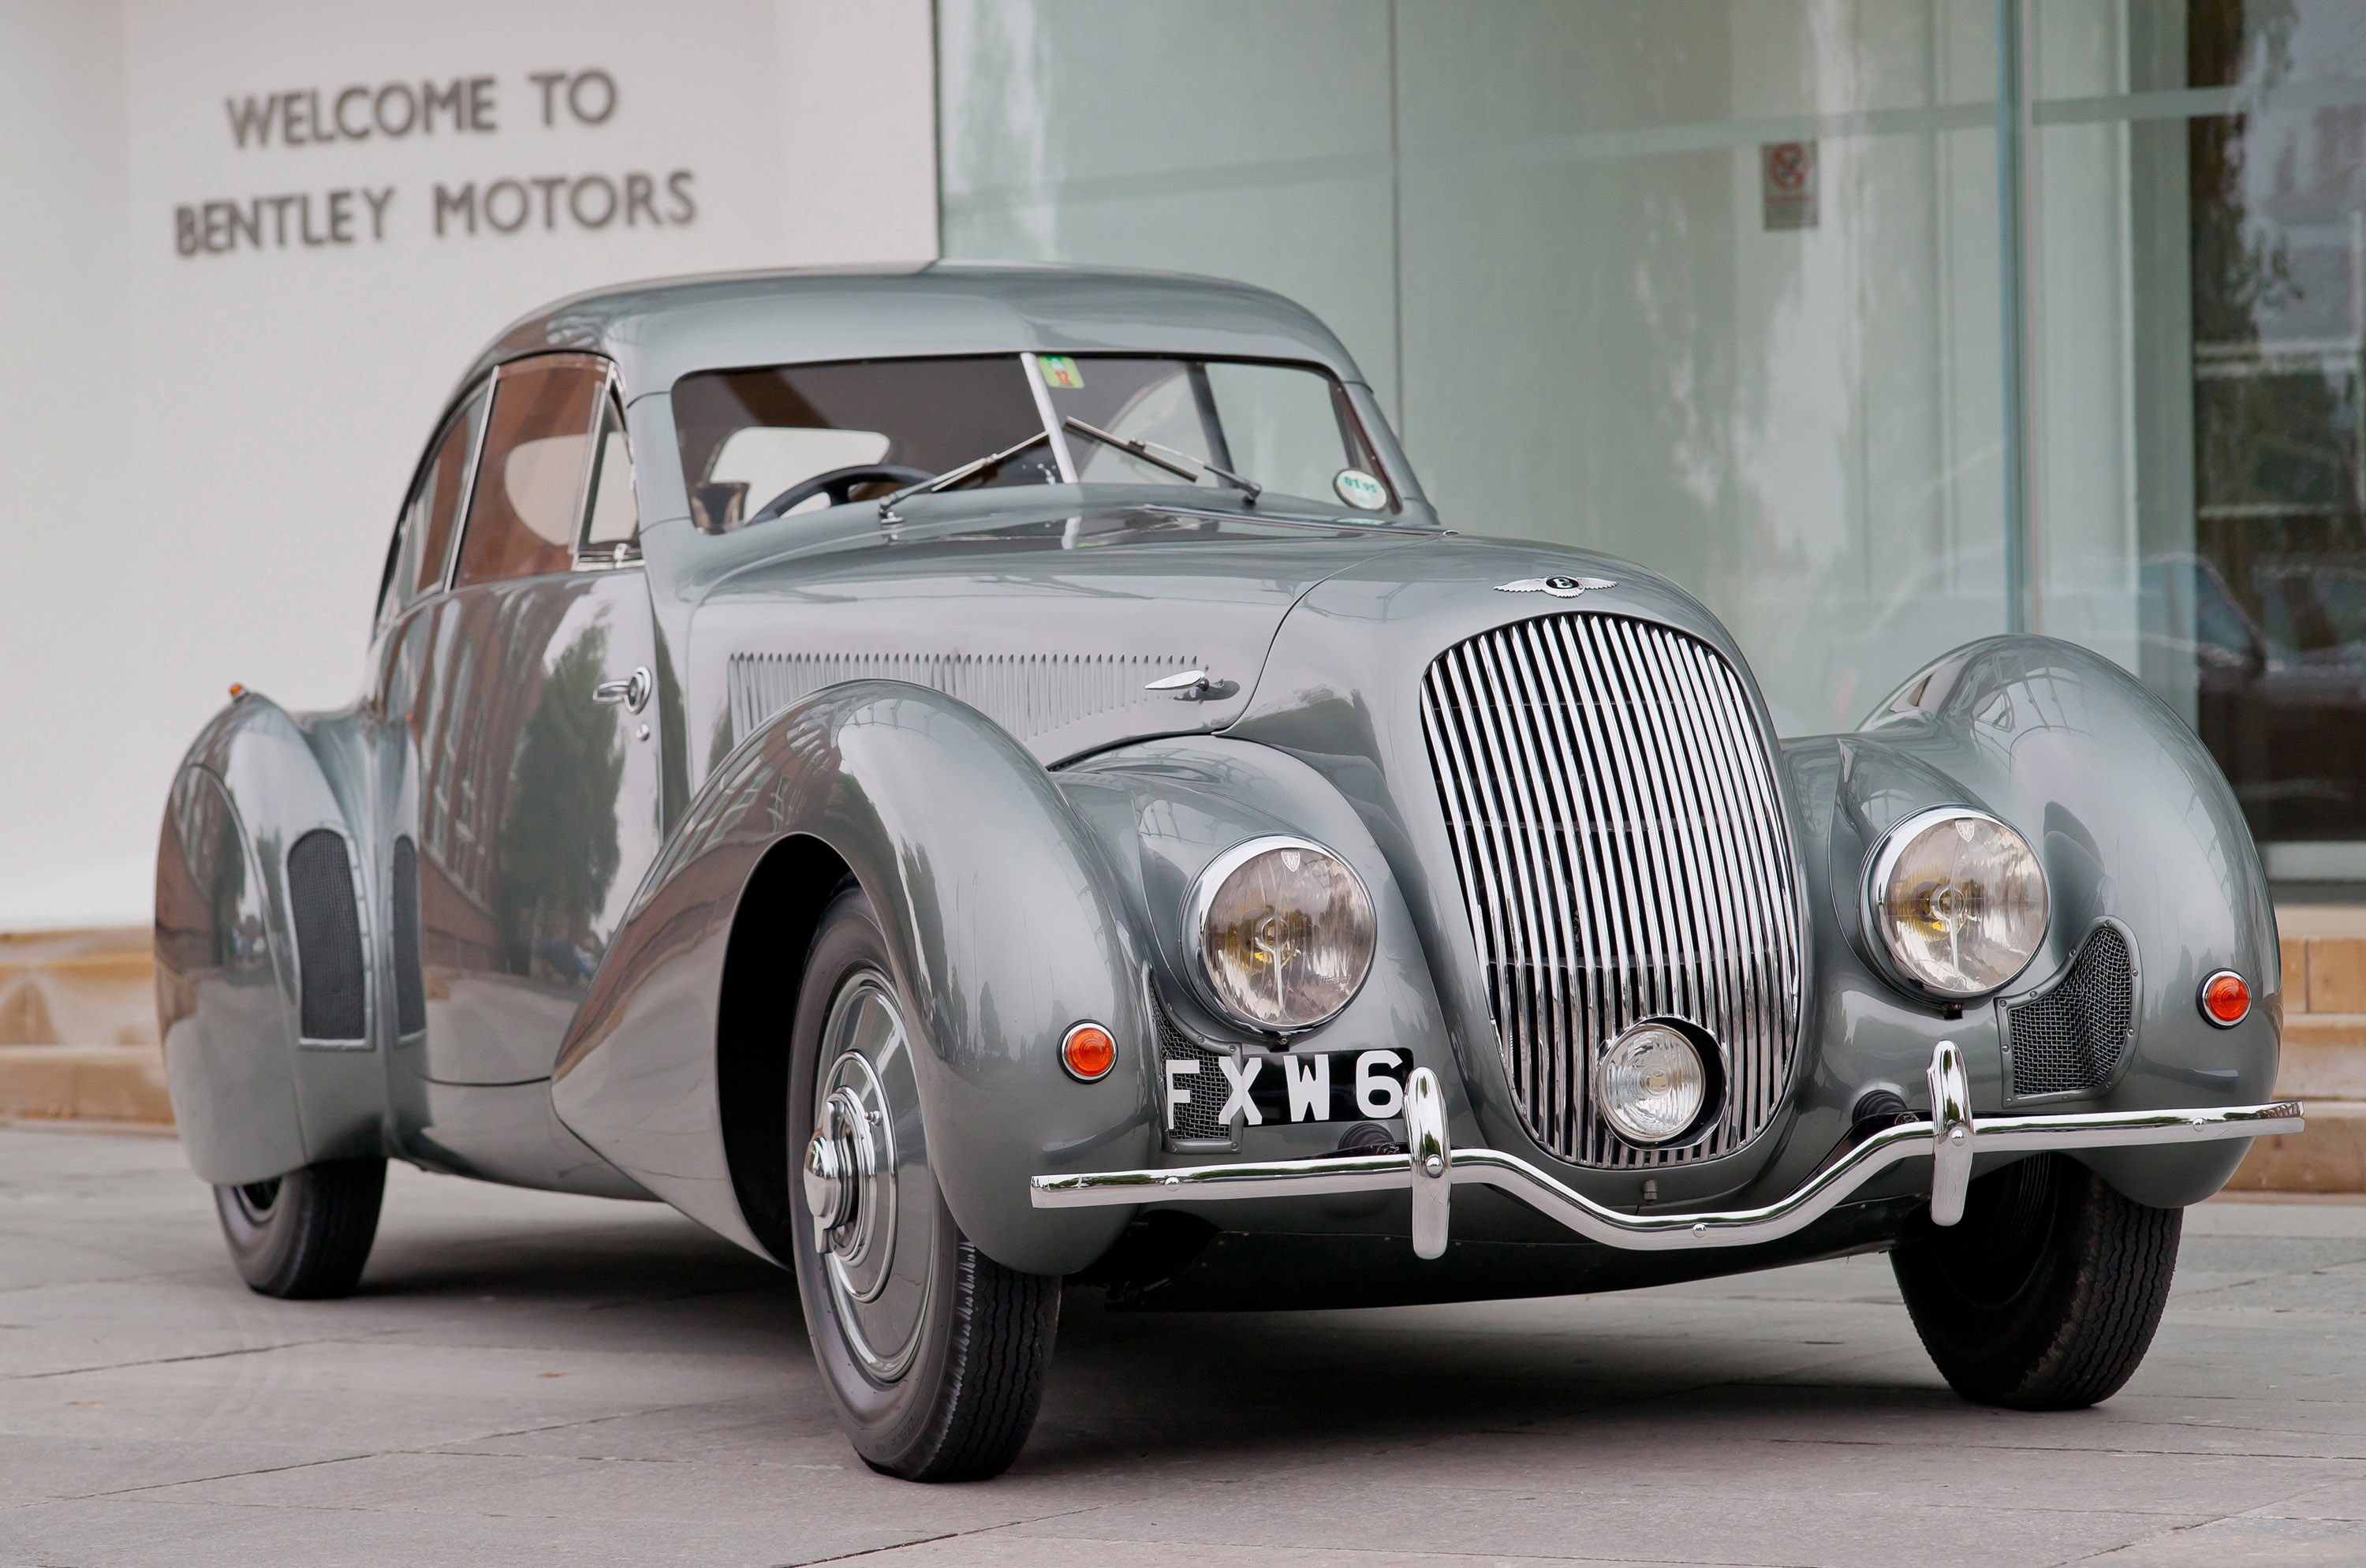 news and auto team art peter rather a bentleys special sir for pop blake create sale vehicle blakecharity bentley